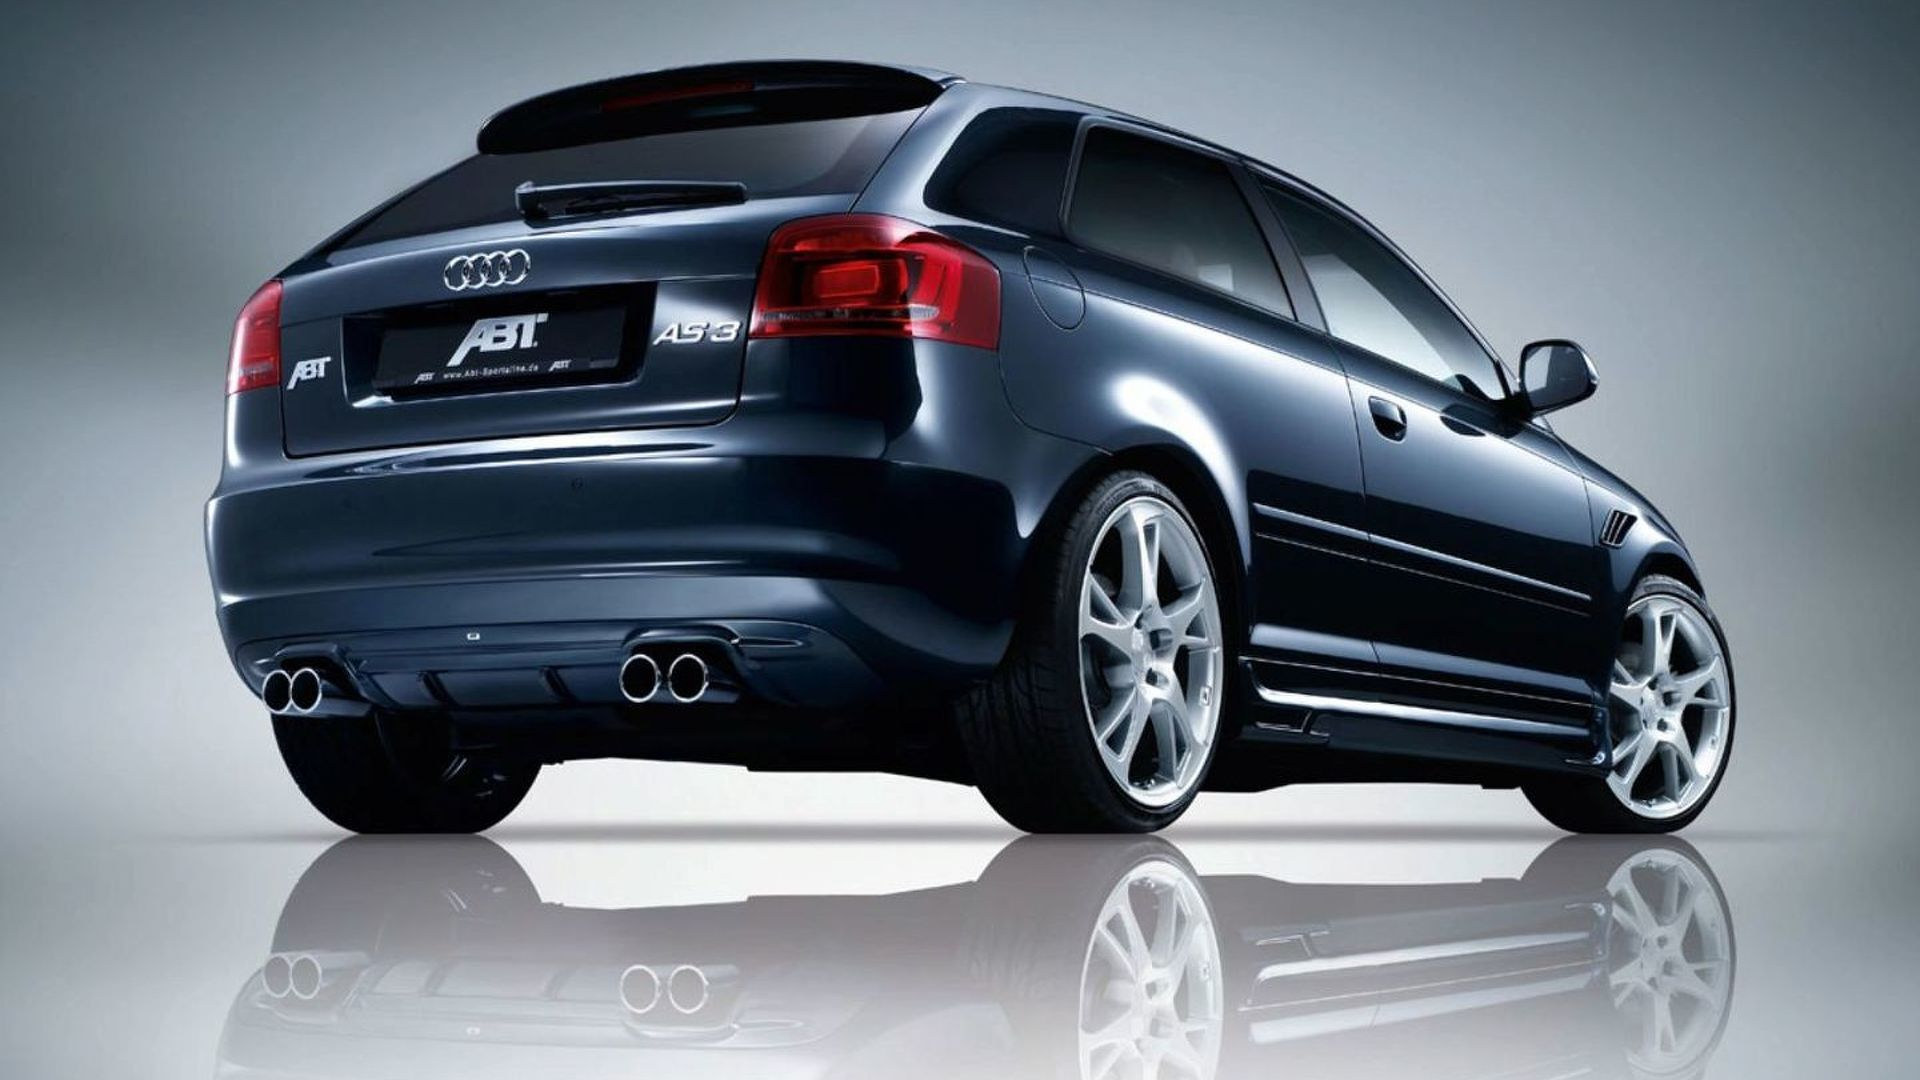 New ABT AS3 based on Audi A3 Facelift Revealed